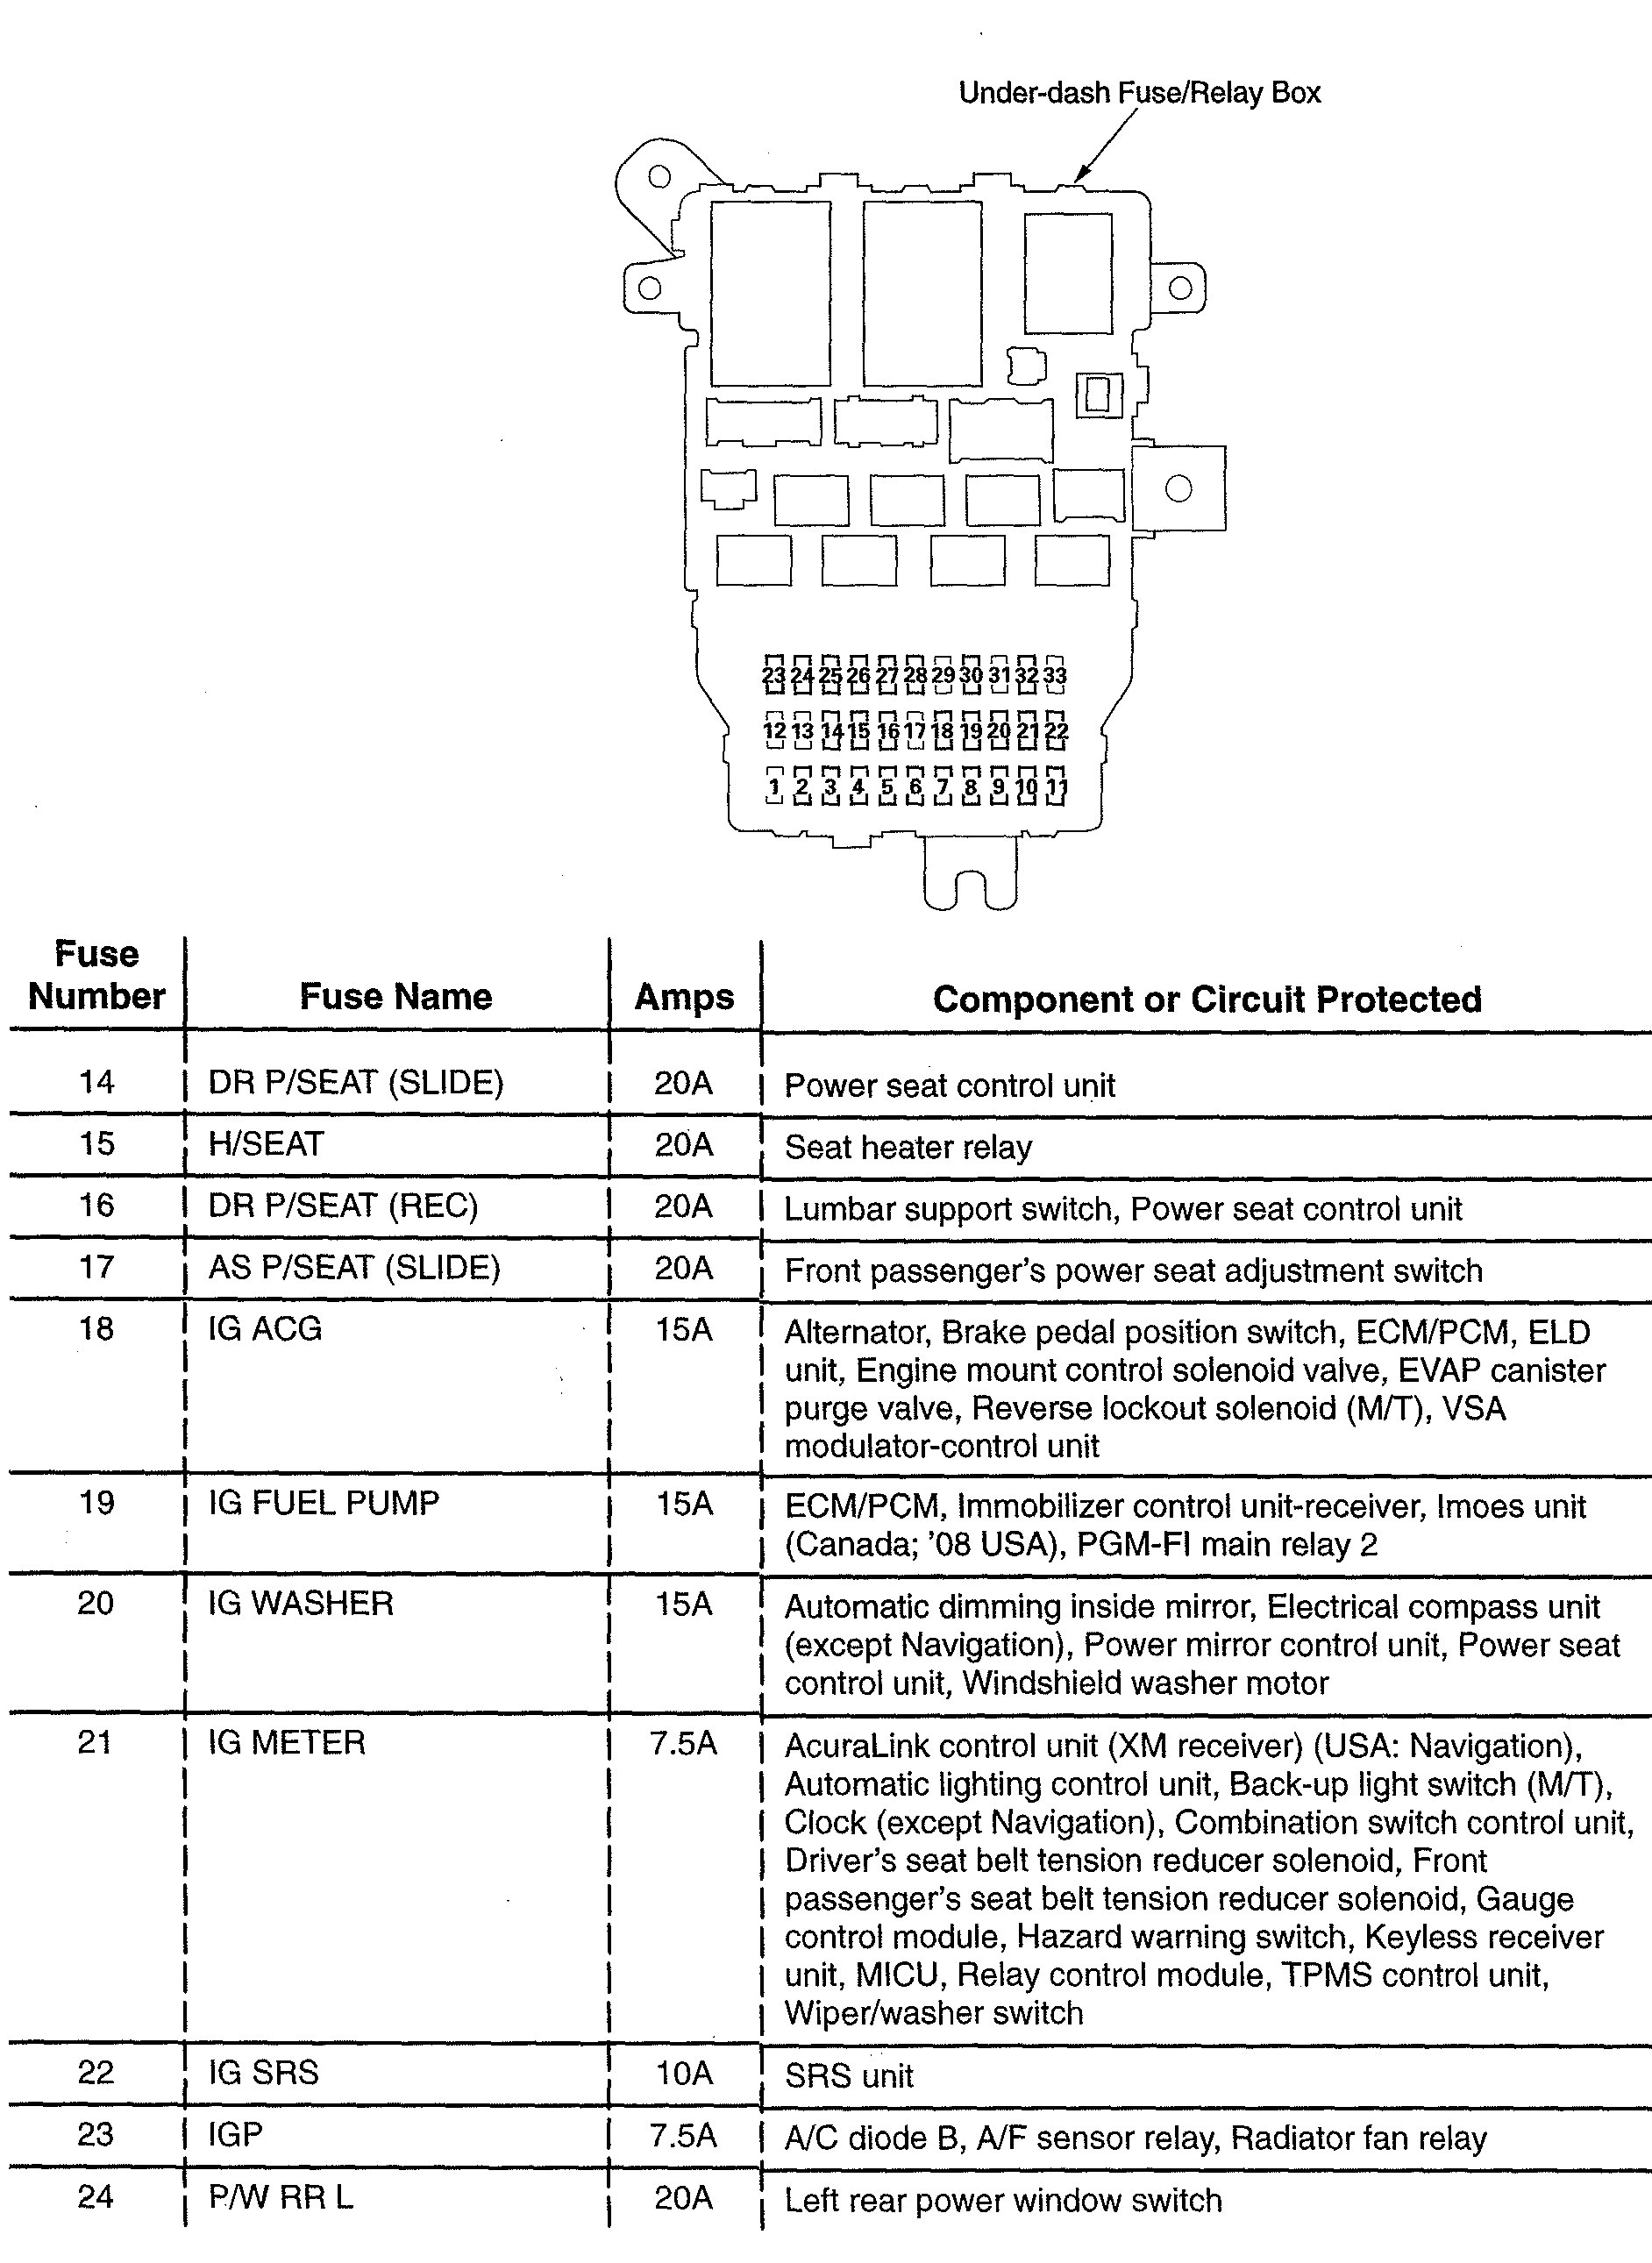 acura tl wiring diagram fuse panel 2 2008 acura tl (2008) wiring diagrams fuse panel carknowledge 2007 acura tl wiring diagram at virtualis.co